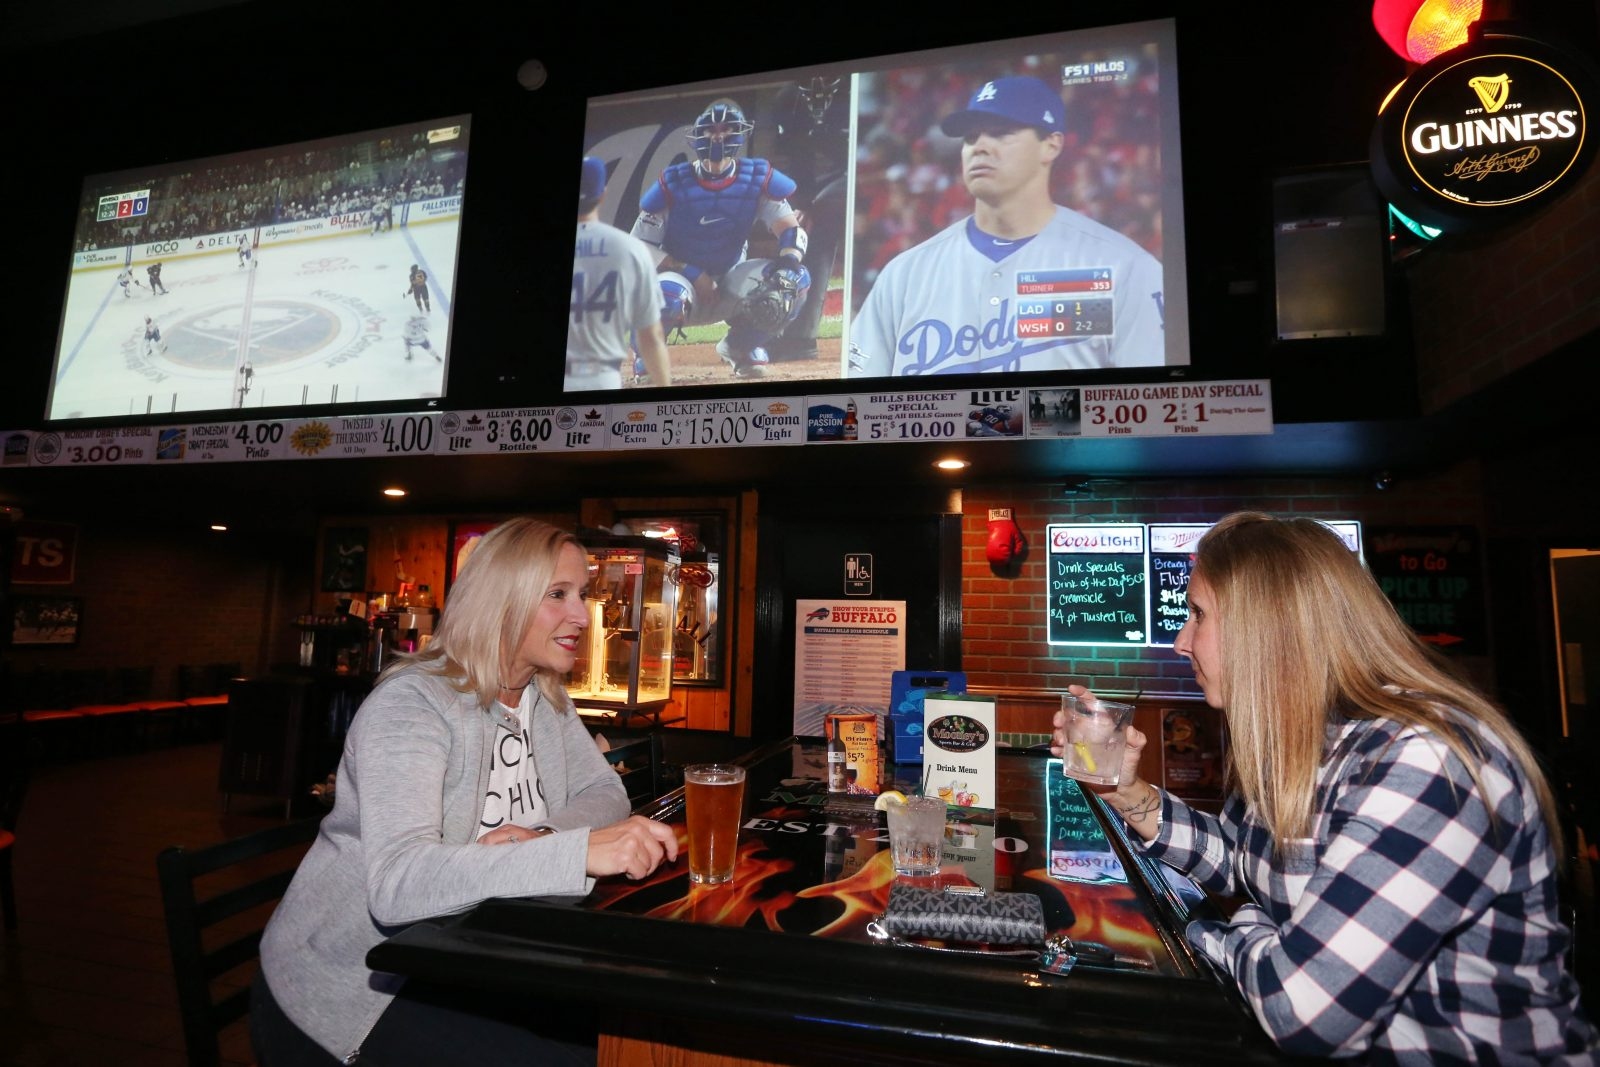 Two large-screen televisions tower above Marie Burzynski, left, and Brandy Mroz, of West Seneca, at Mooney's in West Seneca. (Sharon Cantillon/Buffalo News)